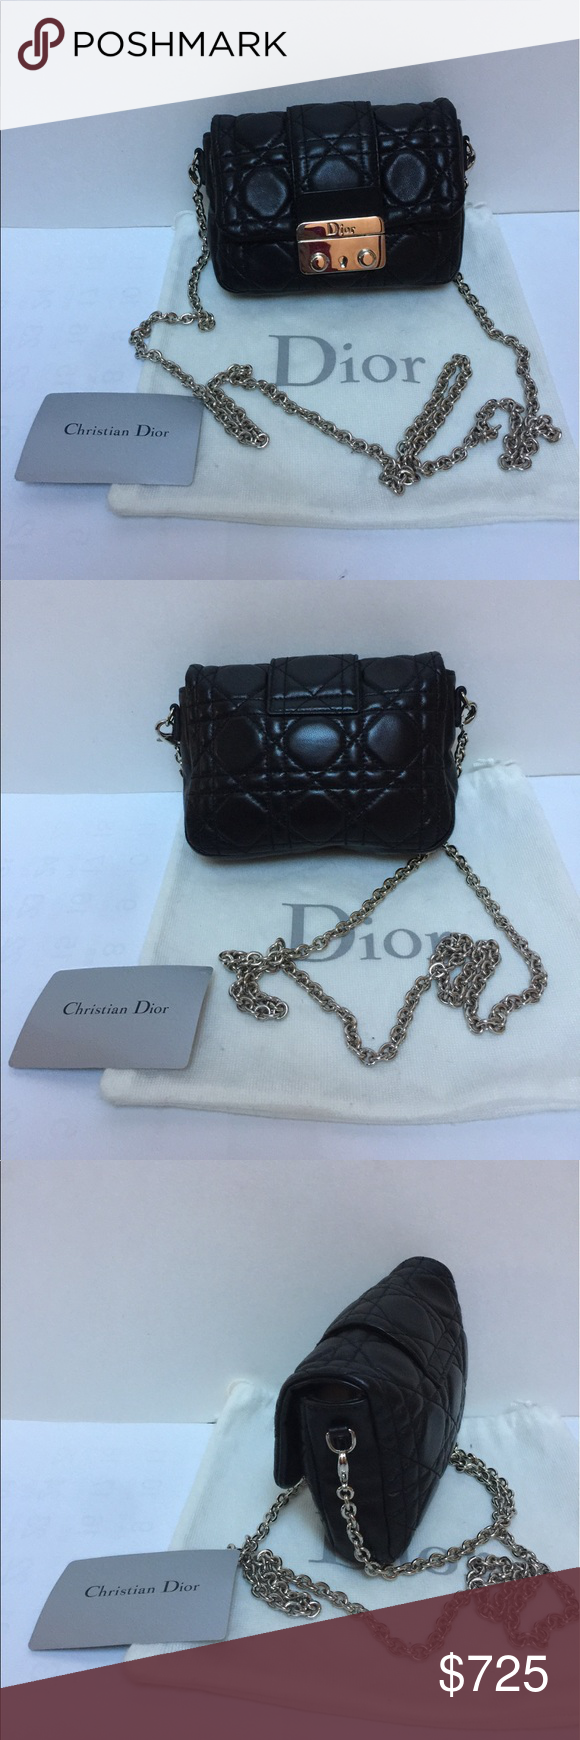 1df92be9c2d8 Christine Dior authentic cross body quitted bag Authentic